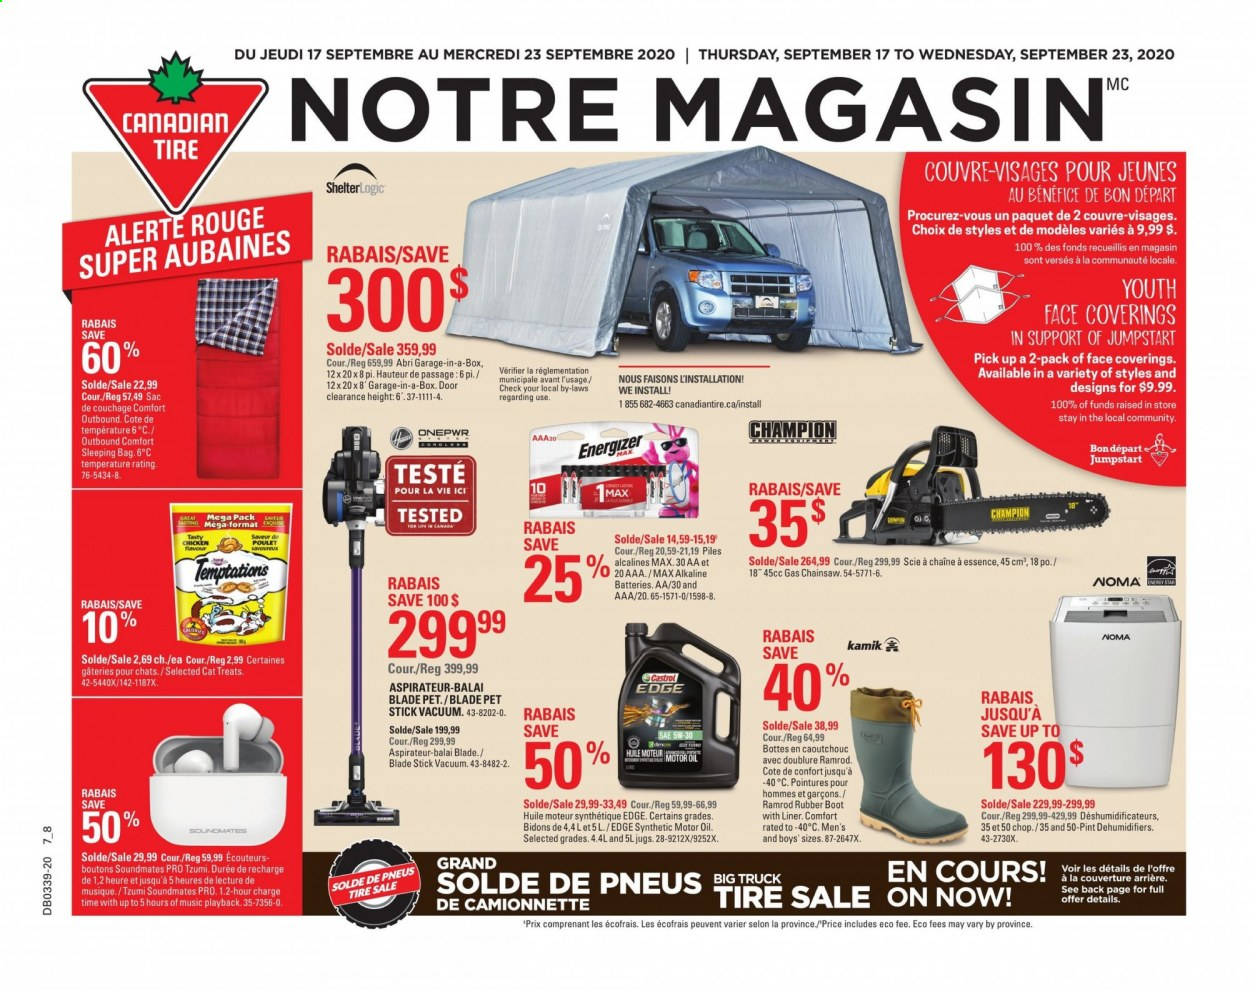 Canadian Tire Flyer - September 17, 2020 - September 23, 2020 - Sales products - bag, battery, door, motor oil, sleeping bag, truck, vacuum, champion, pet, chicken, poulet, aspirateur, balai, couverture, écouteurs, huile, sac, sac de couchage, scie, pile, pile alcaline, rouge, aaa, rubber, box, blade, treats, doors. Page 1.